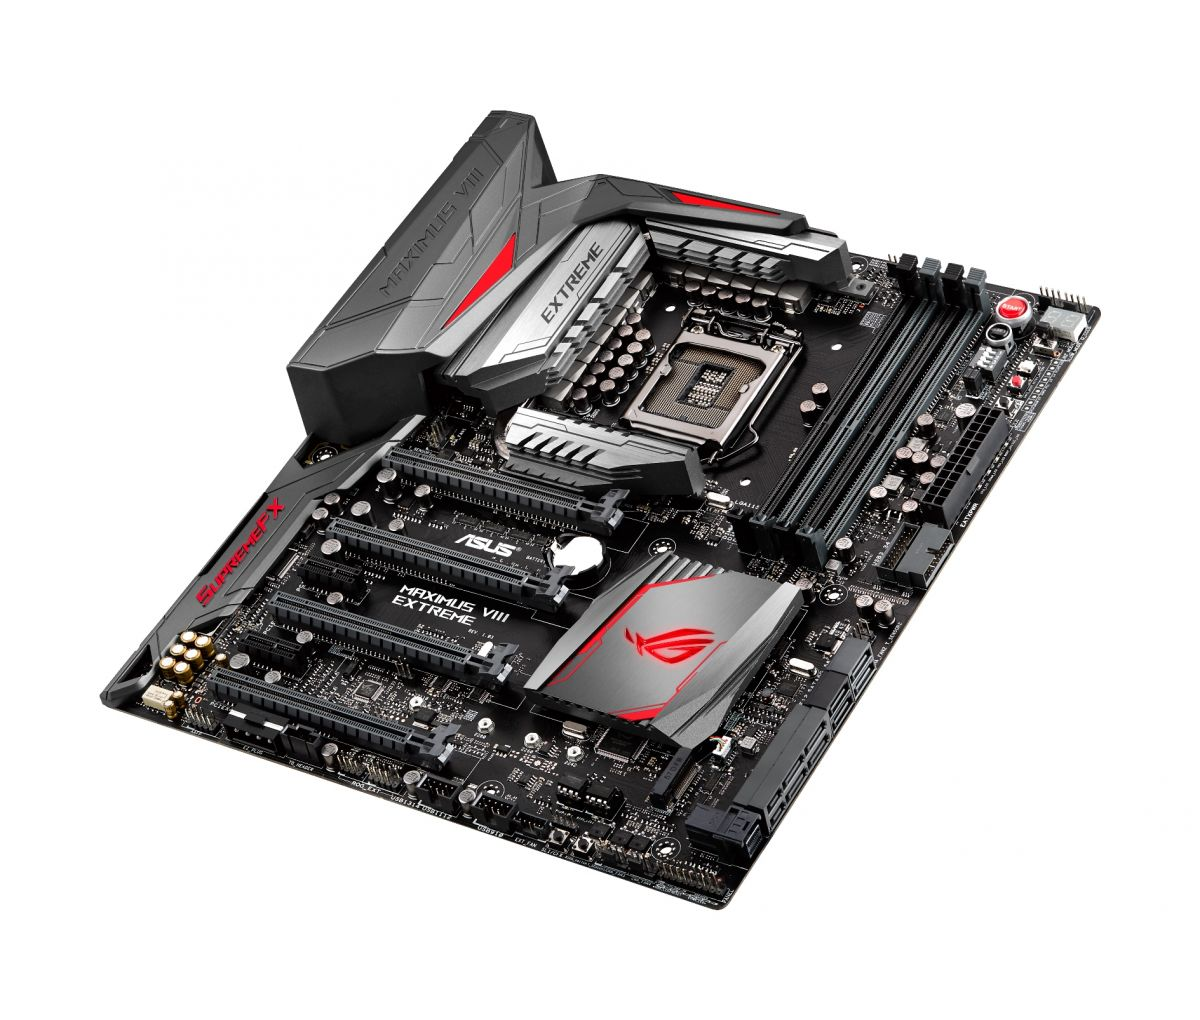 asus maximus viii hero close up motherboard